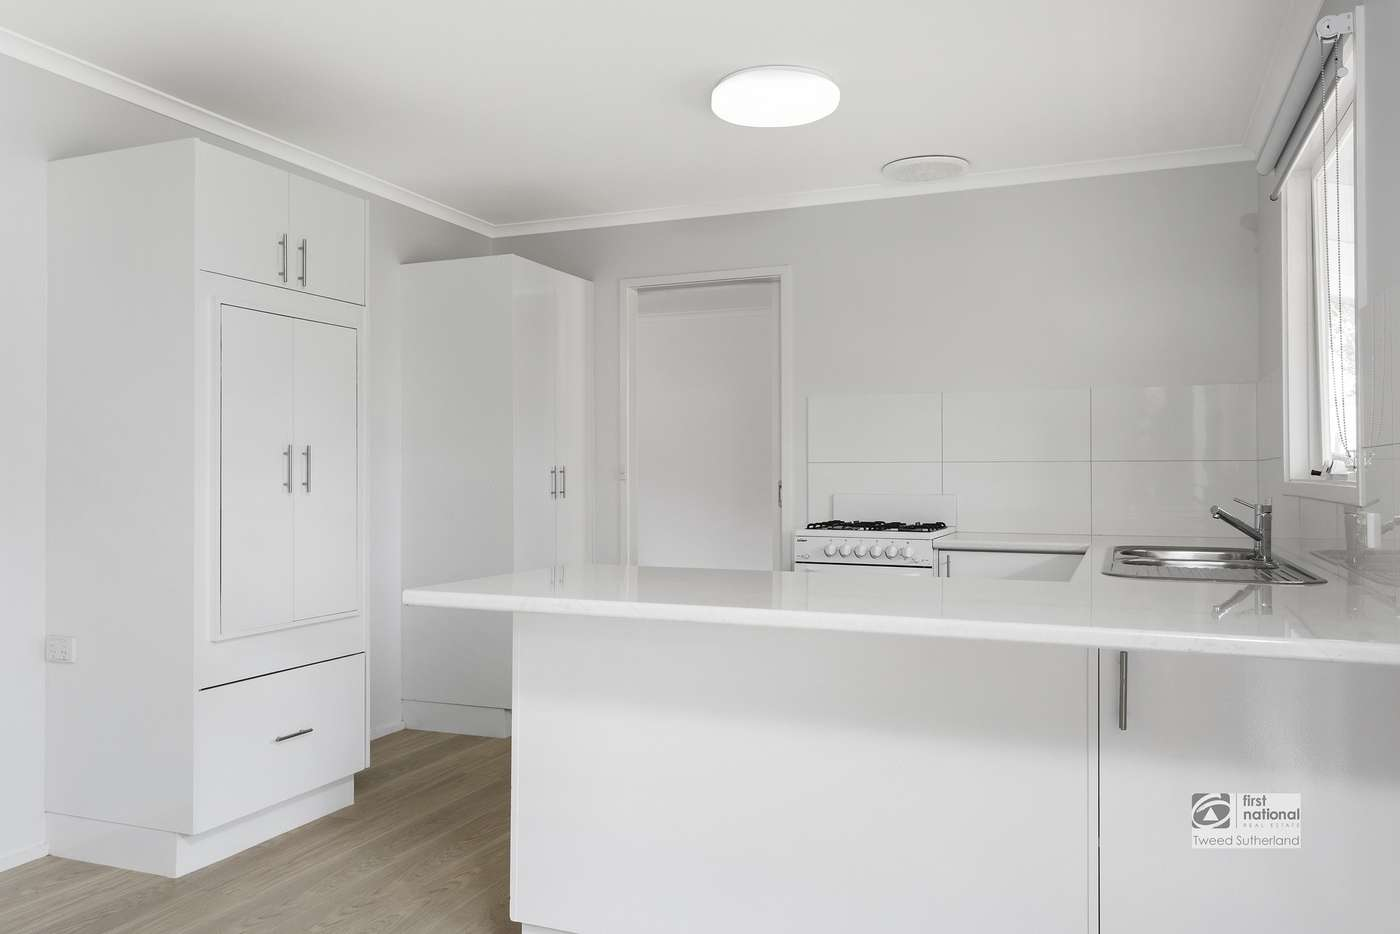 Fifth view of Homely house listing, 92 Nankervis Road, Mandurang VIC 3551